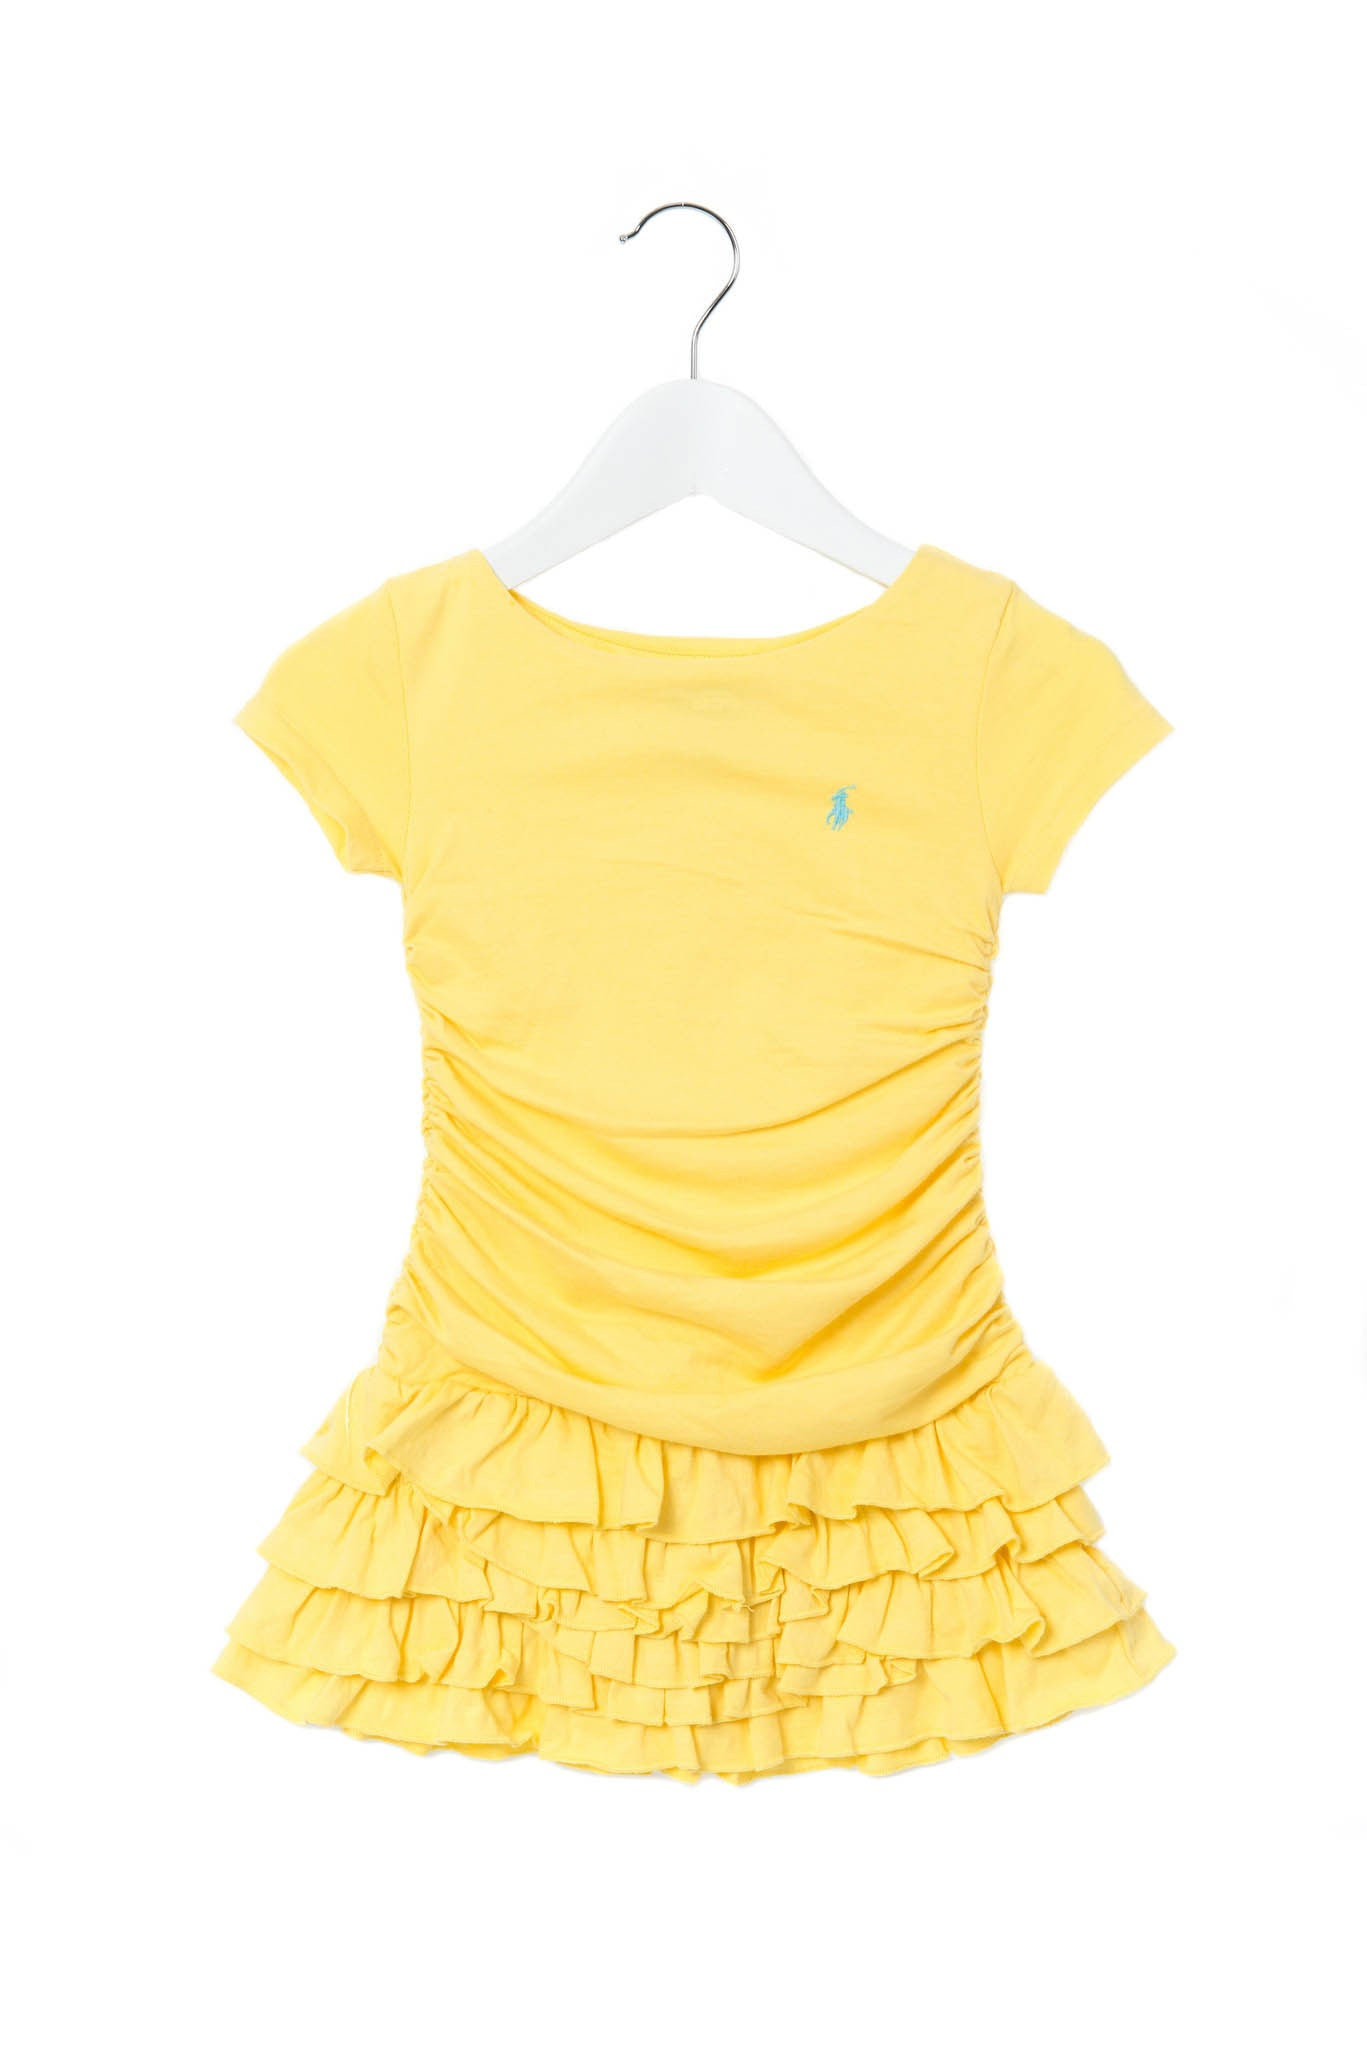 10001281 Ralph Lauren Kids~Dress 2T at Retykle